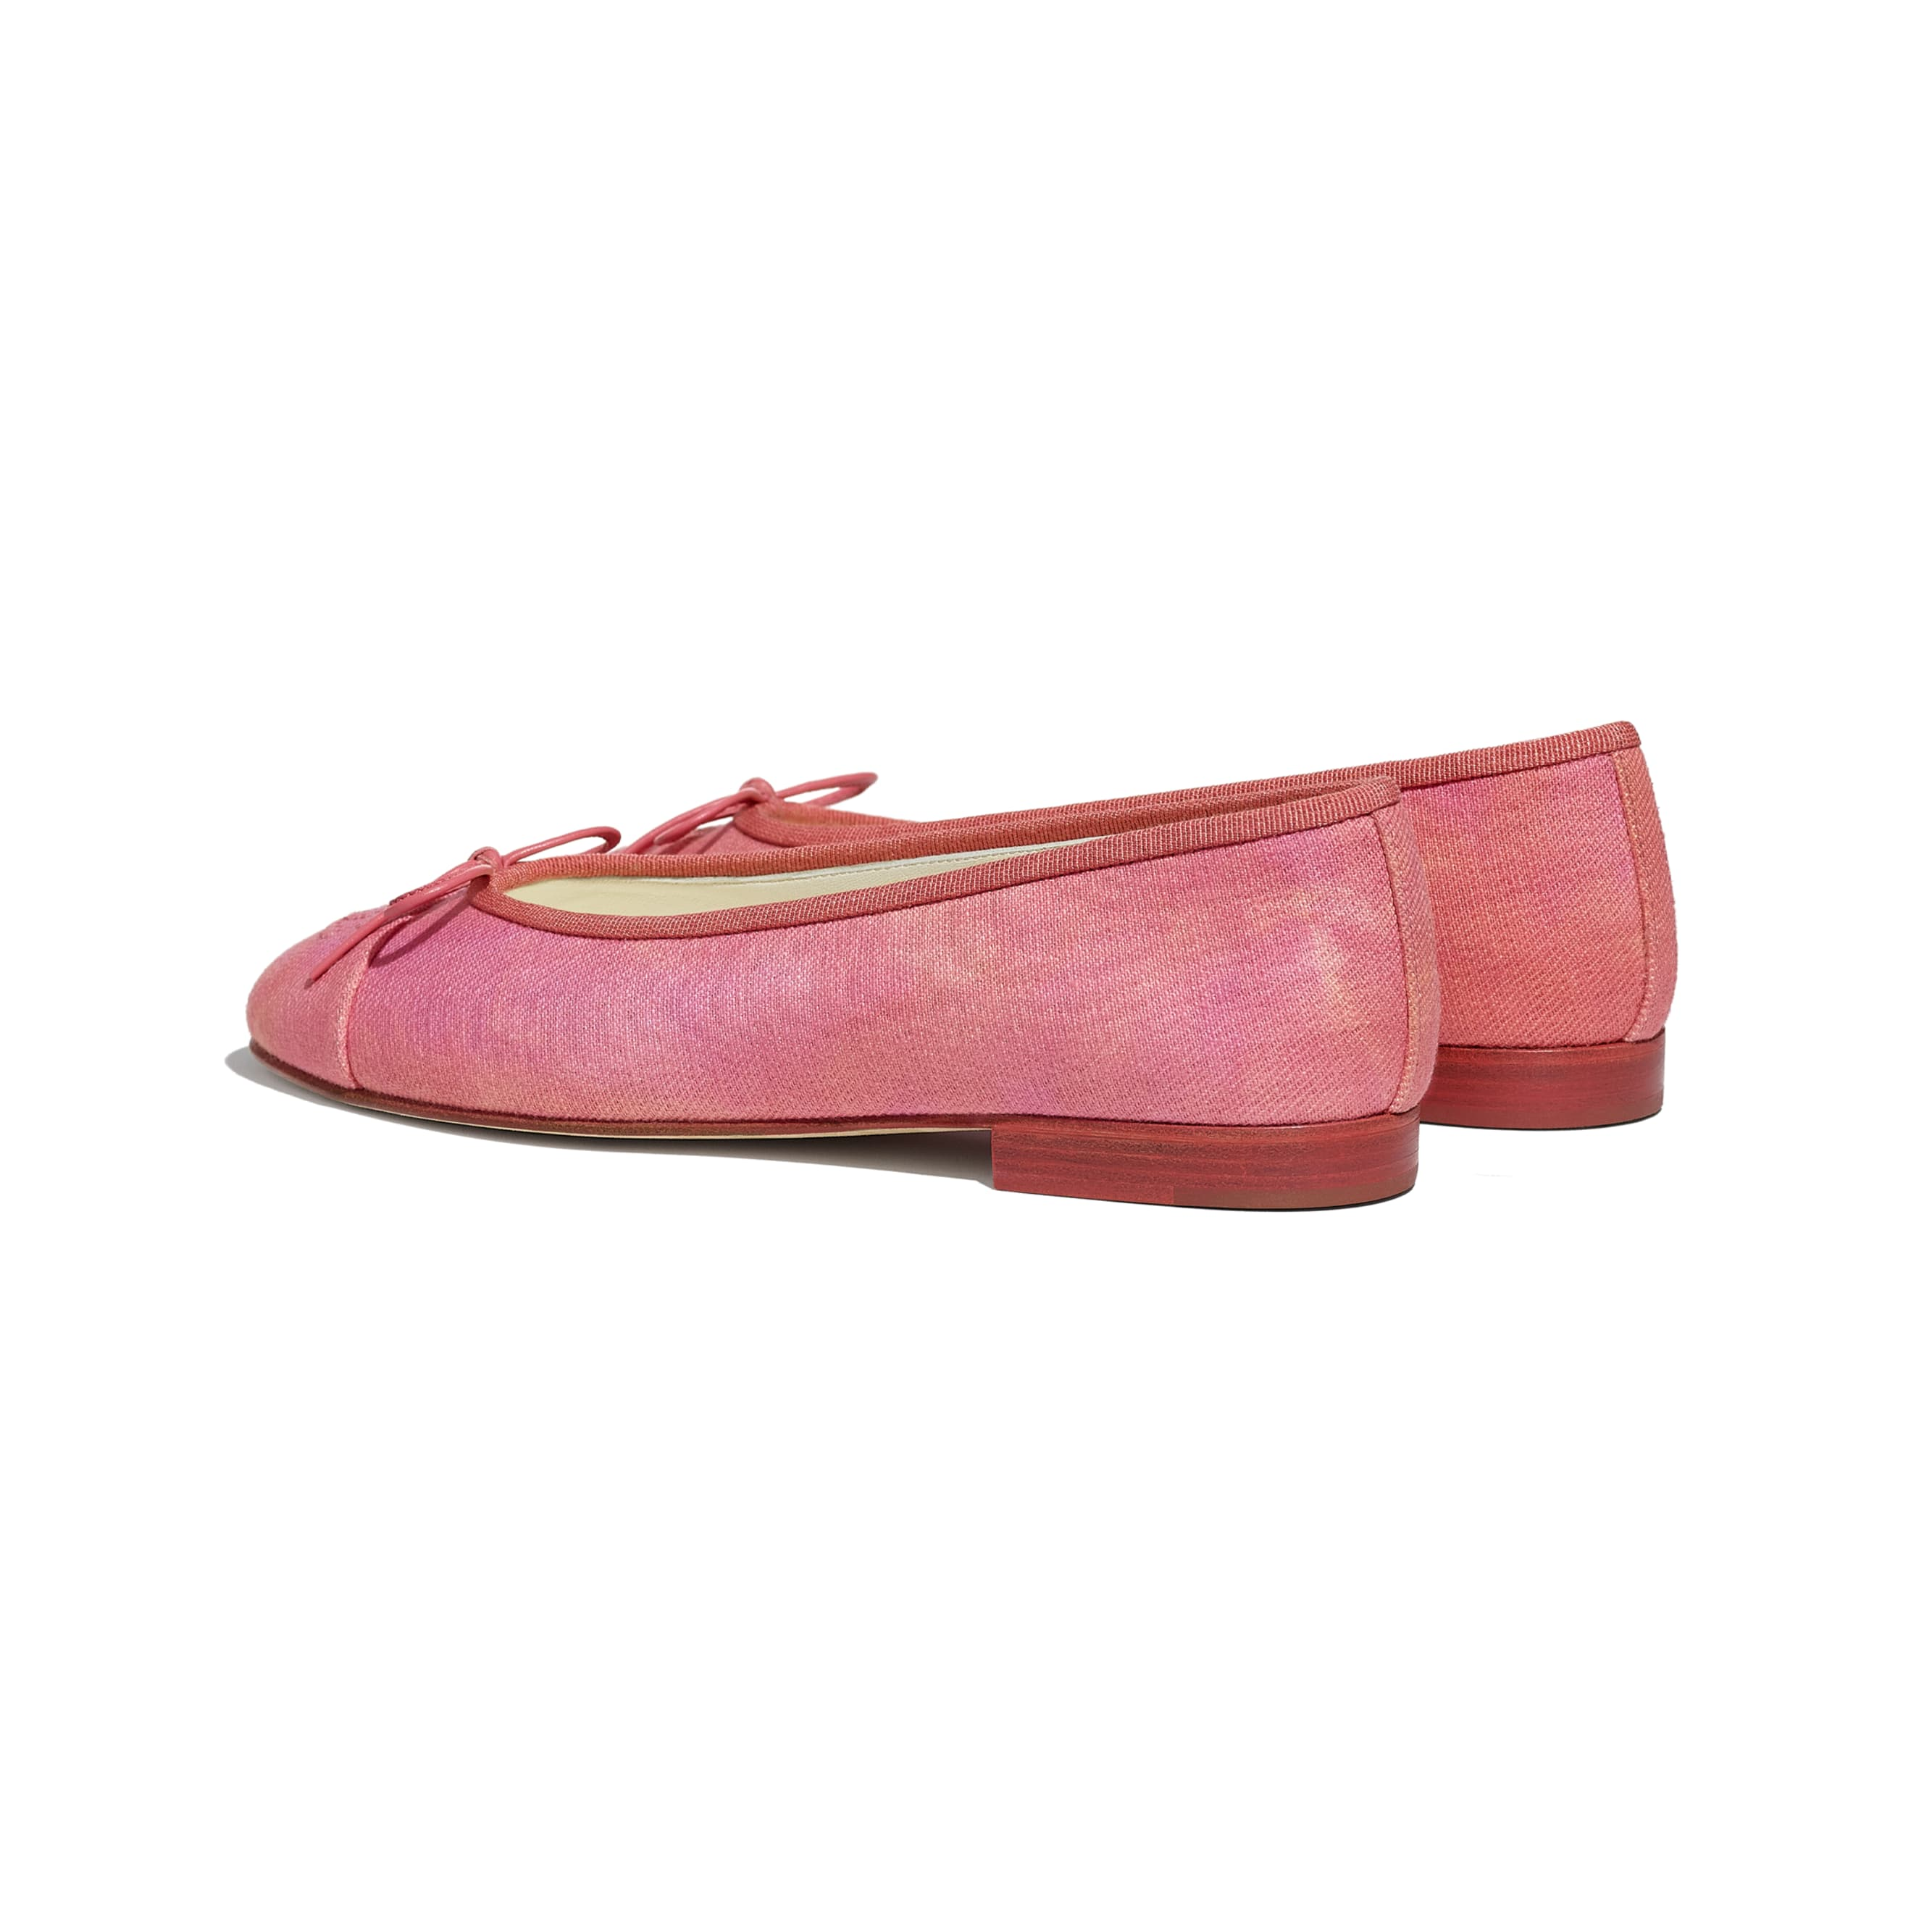 Flats - Coral, Pink & Orange - Fabric - CHANEL - Other view - see standard sized version